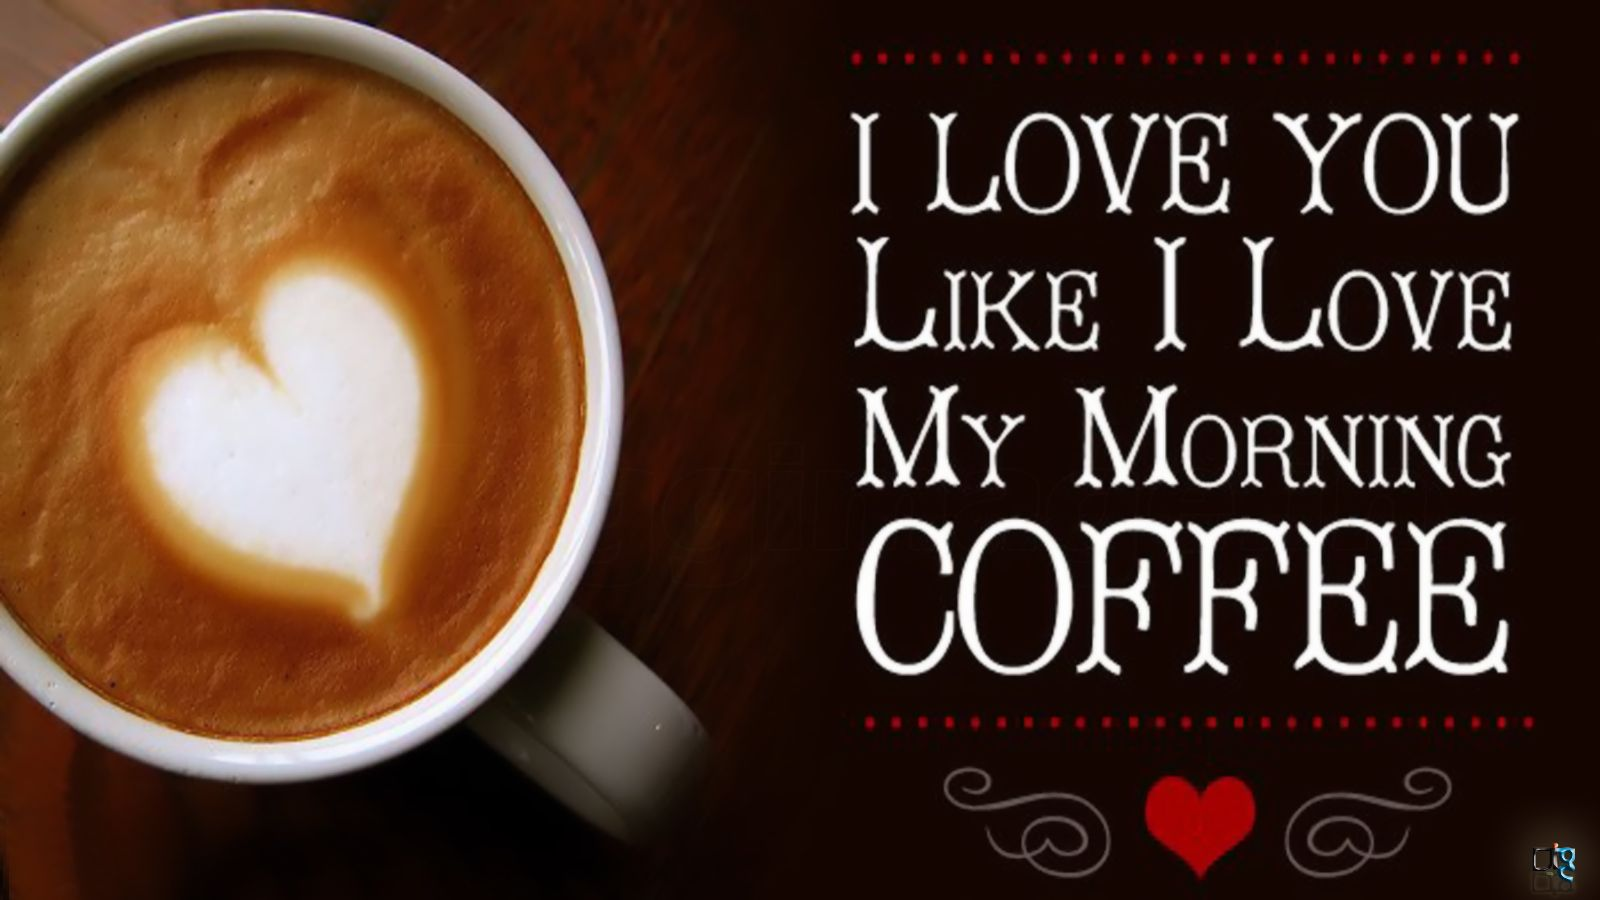 Morning coffee quotes morninggreetingsfreedownloadherehs morning coffee quotes morninggreetingsfreedownloadhere kristyandbryce Image collections